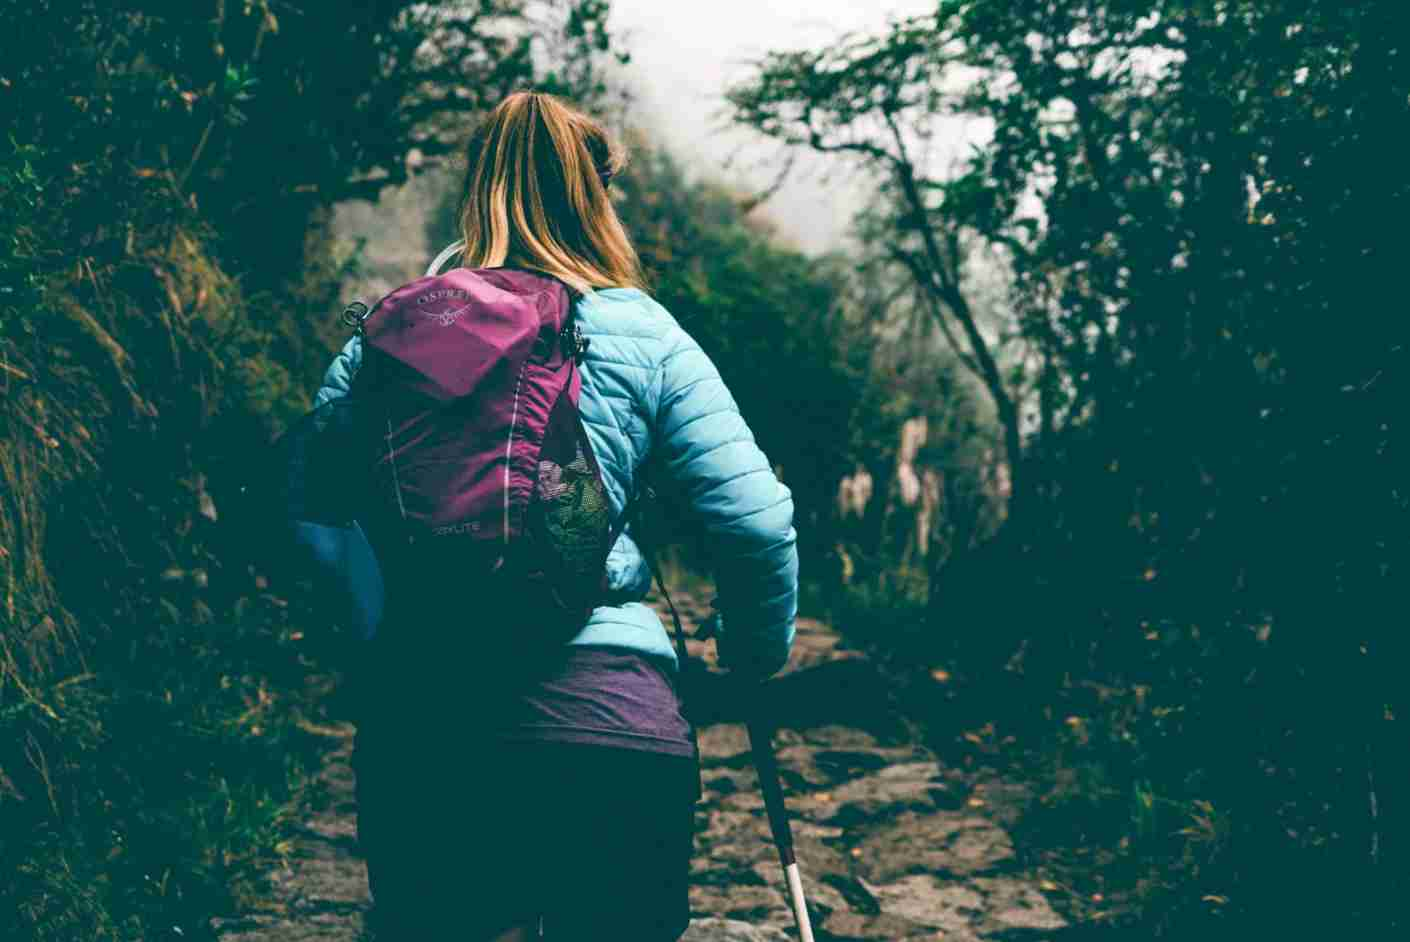 Osprey packs are well-known to be durable, solid options for backpacking trips. (Photo by Kal Loftus via Unsplash)